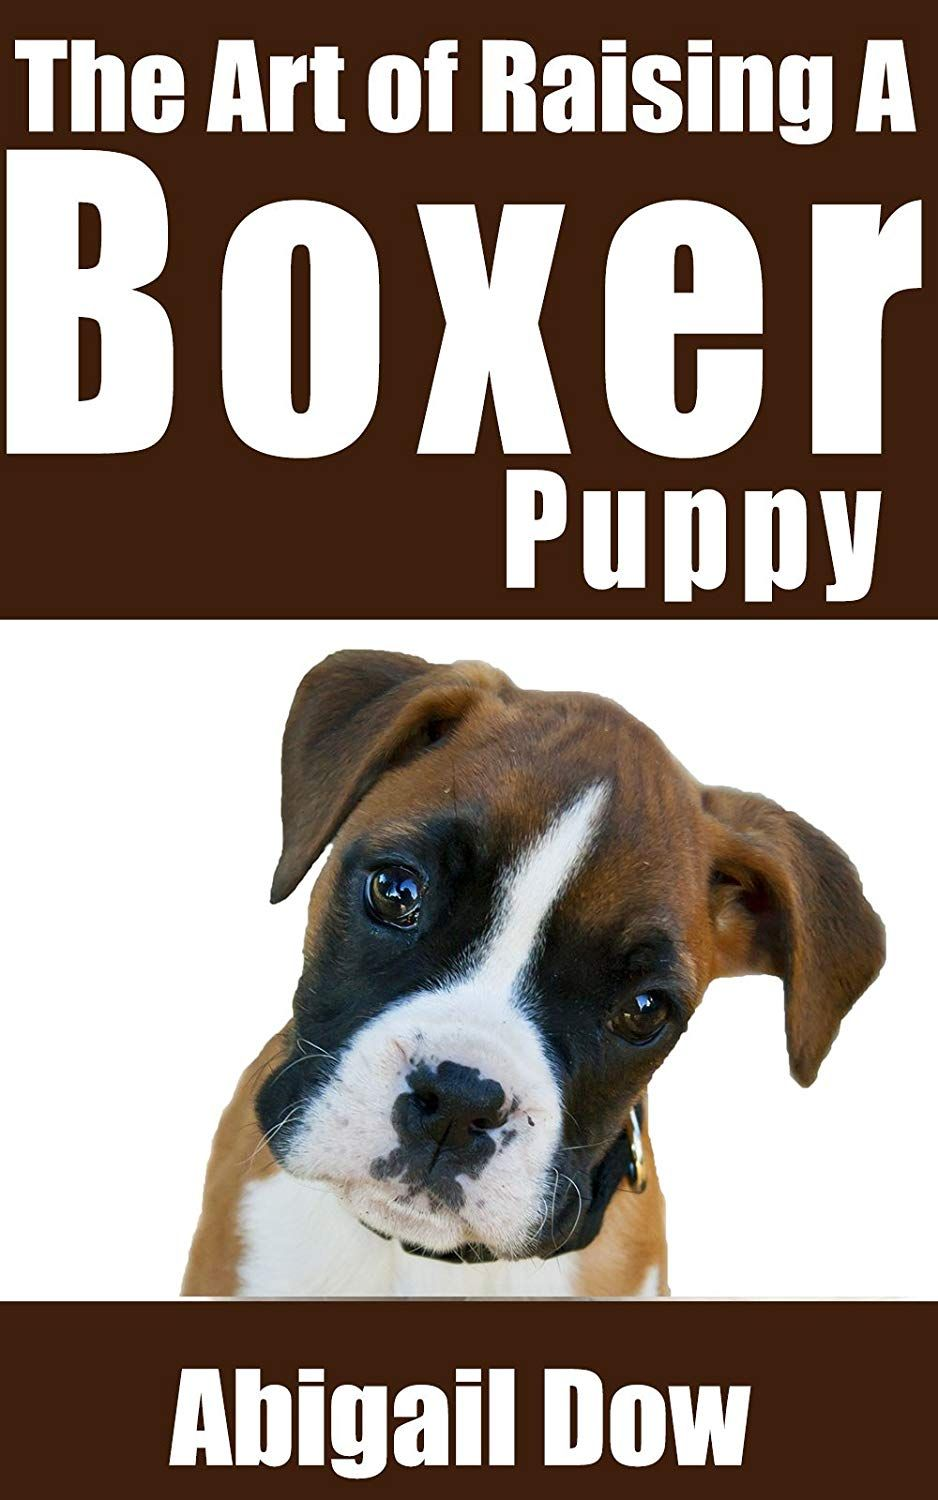 The Art of Raising a BOXER Puppy From Puppyhood to Adult